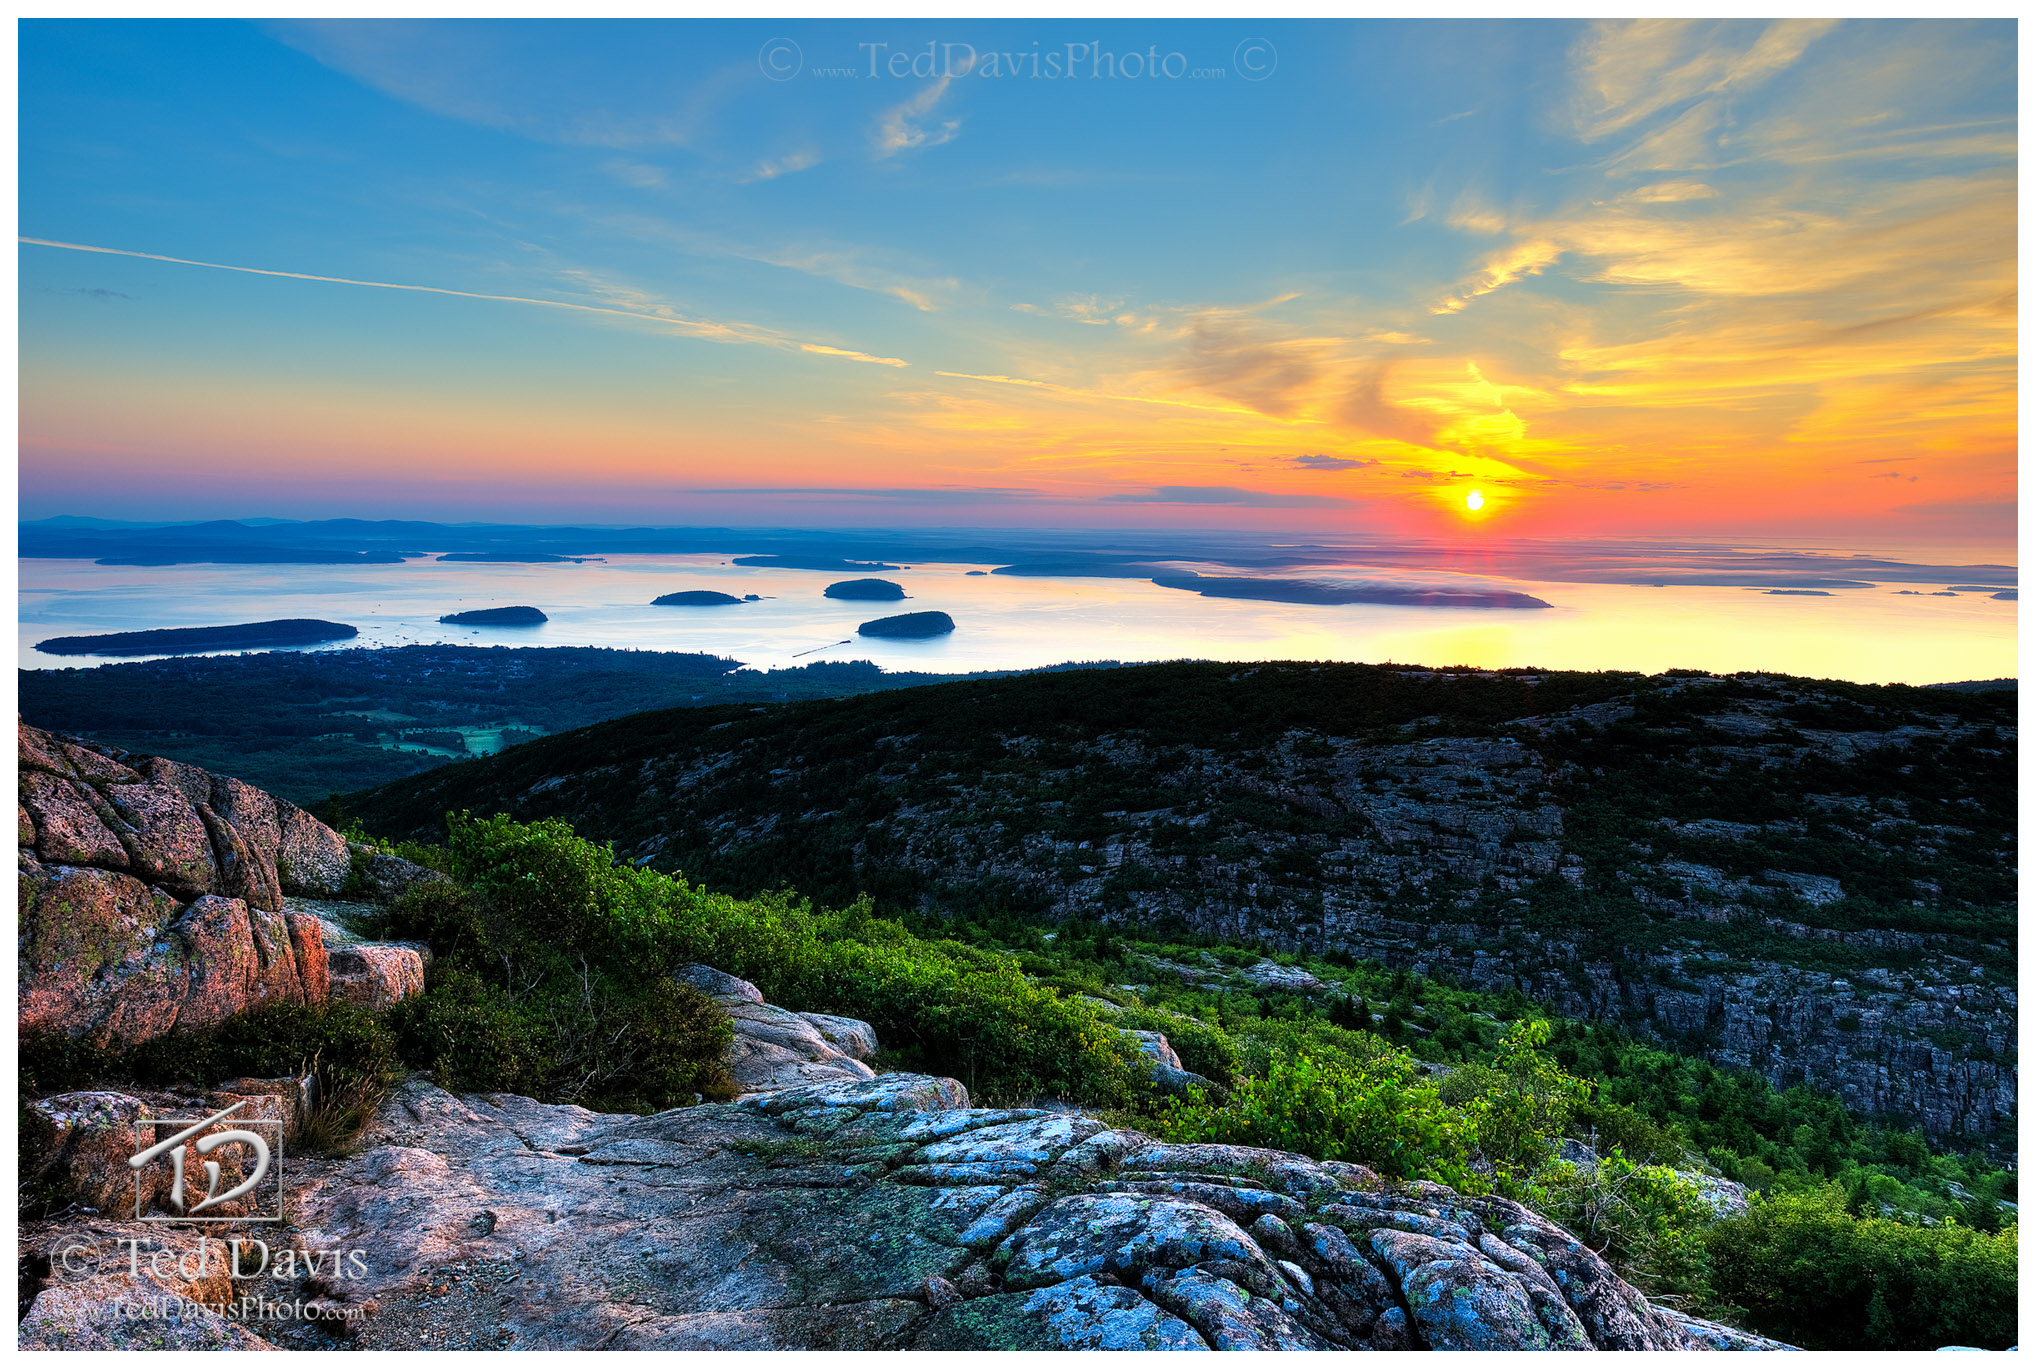 Harbor, Sunrise, Ocean, Bar, Sea, Glow, Maine, New England, Cadillac, Mountain, photo